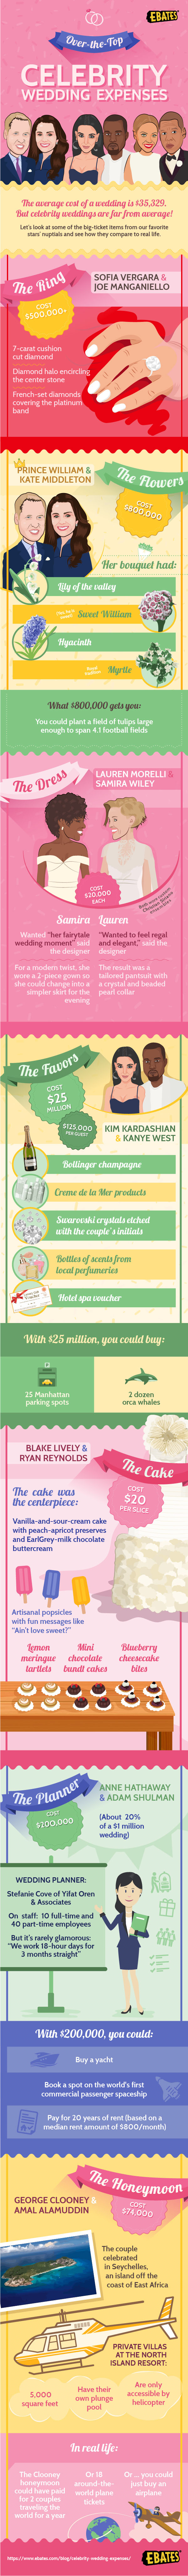 Celebrity Wedding Expenses